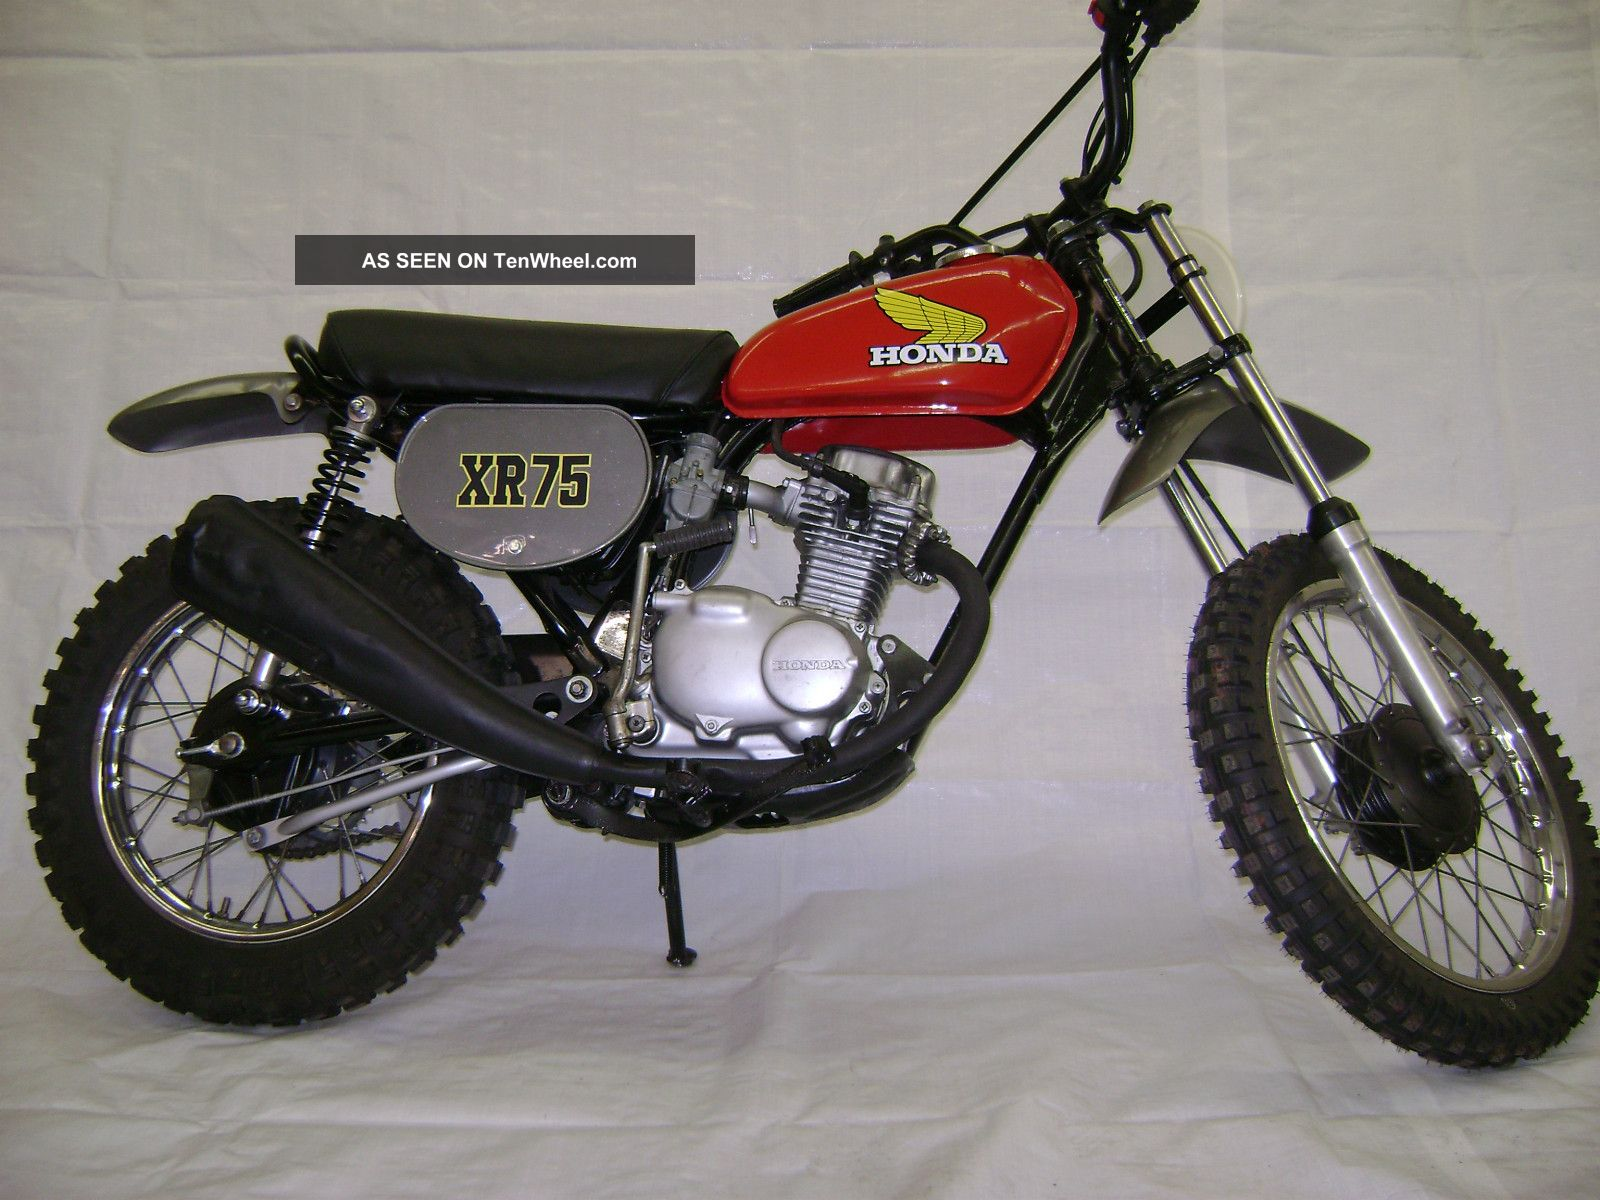 75 1975 Honda Xr75 Motorcycle Xr - 75 Xr 75 XR photo